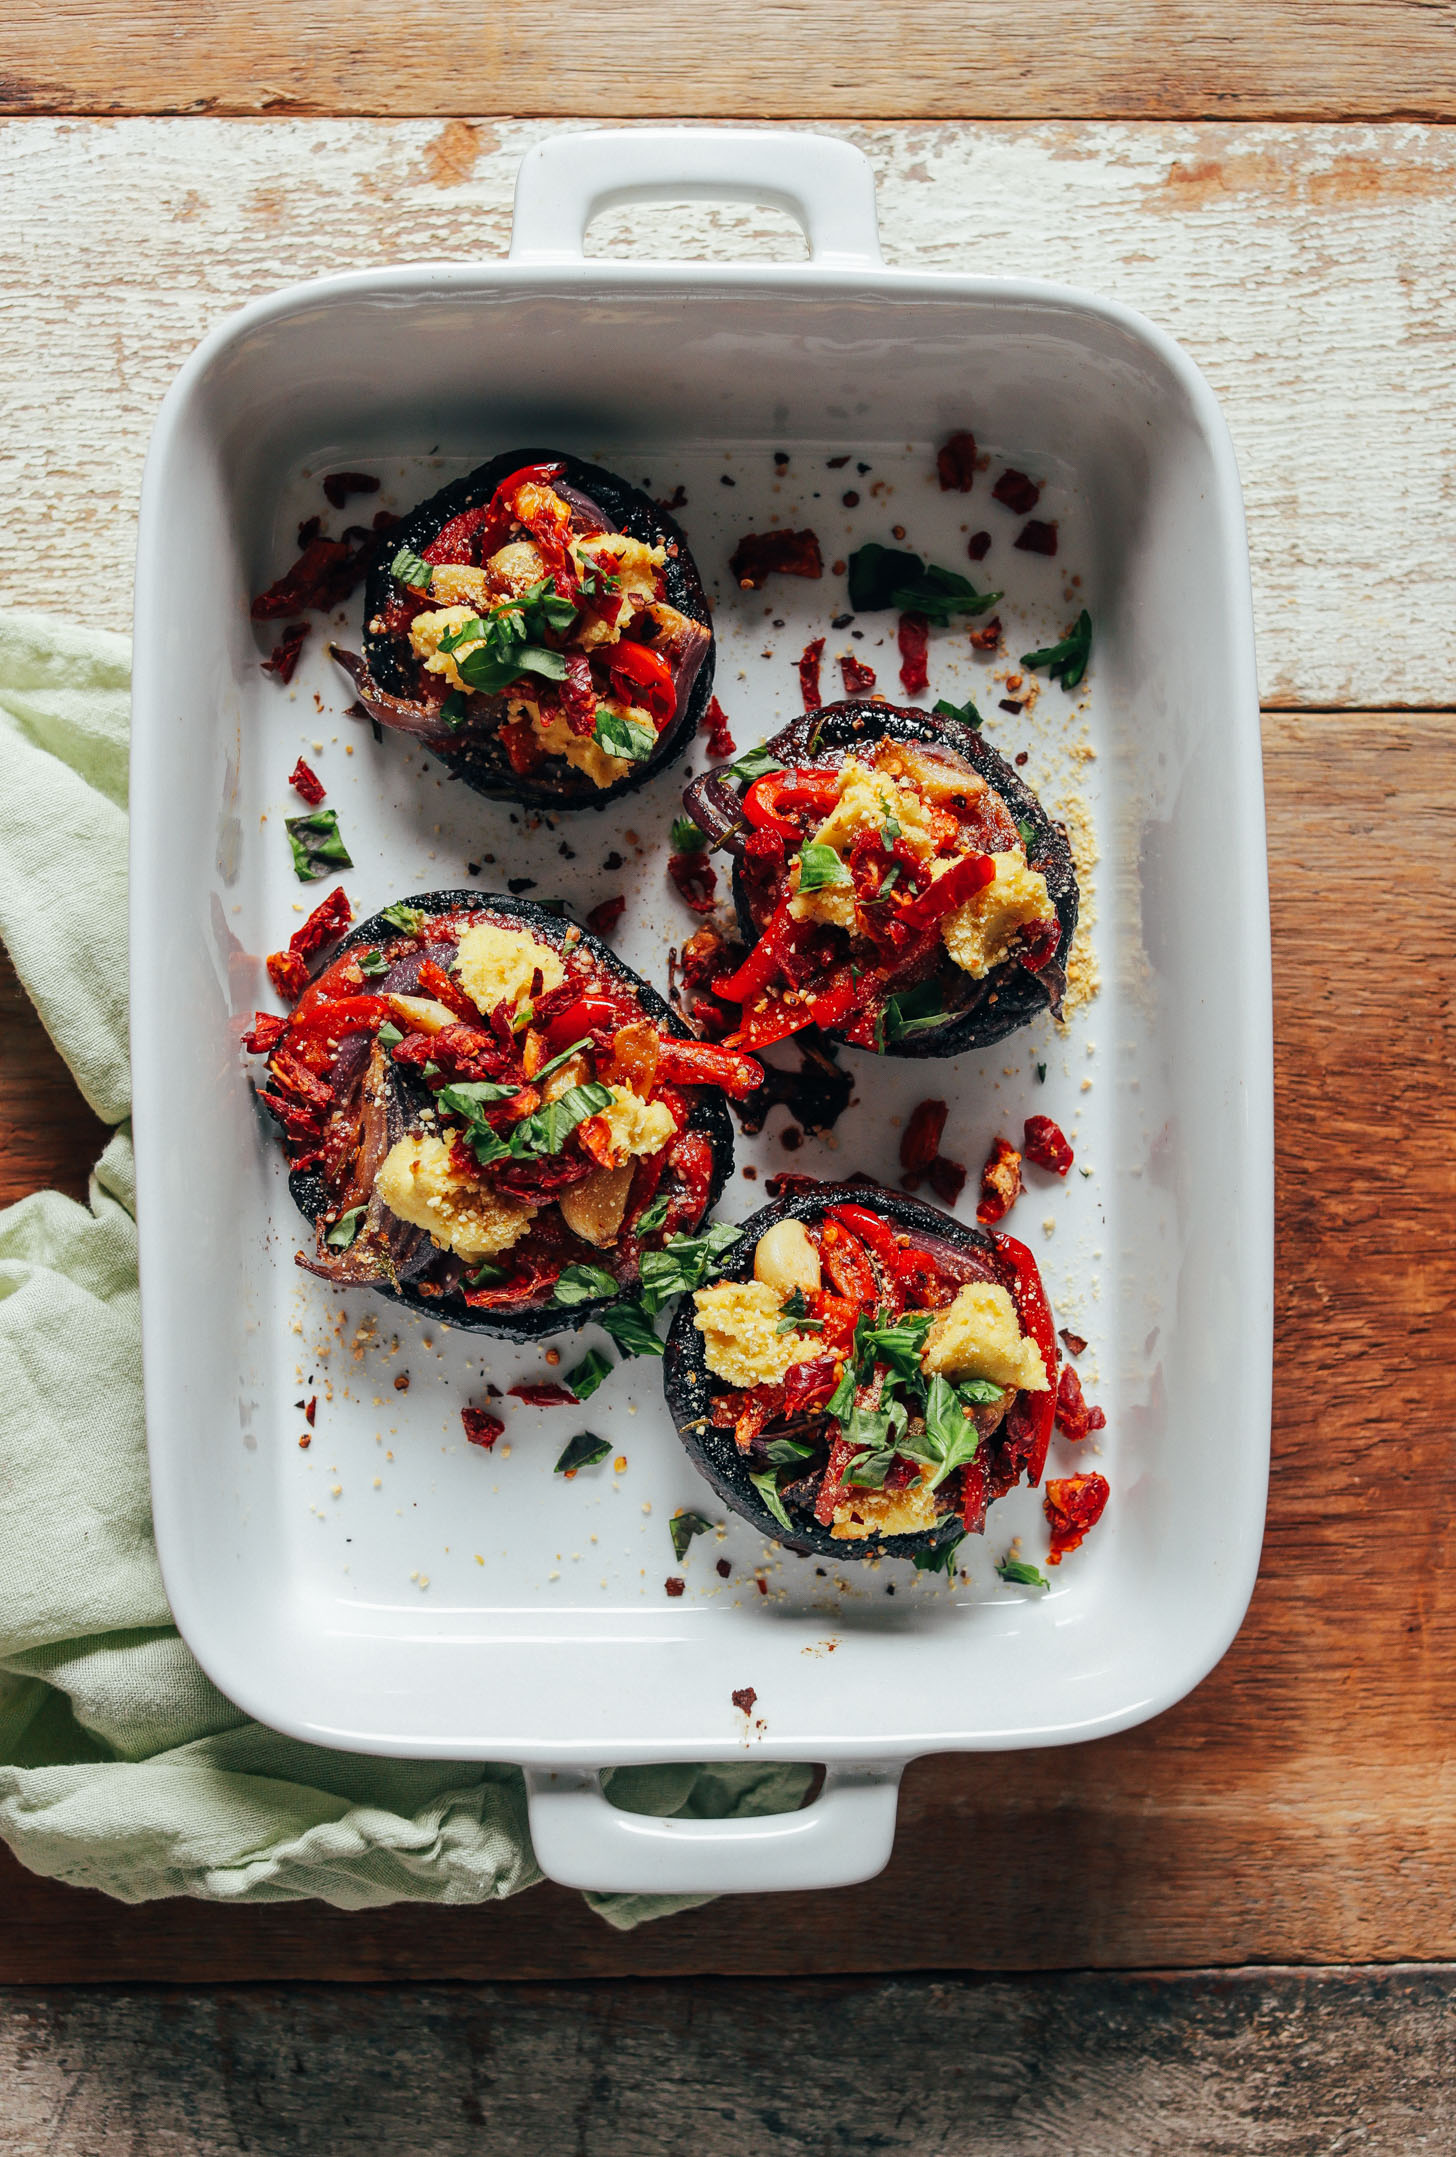 White baking dish filled with Balsamic-Marinated Portobello Pizzas for a delicious vegan meal